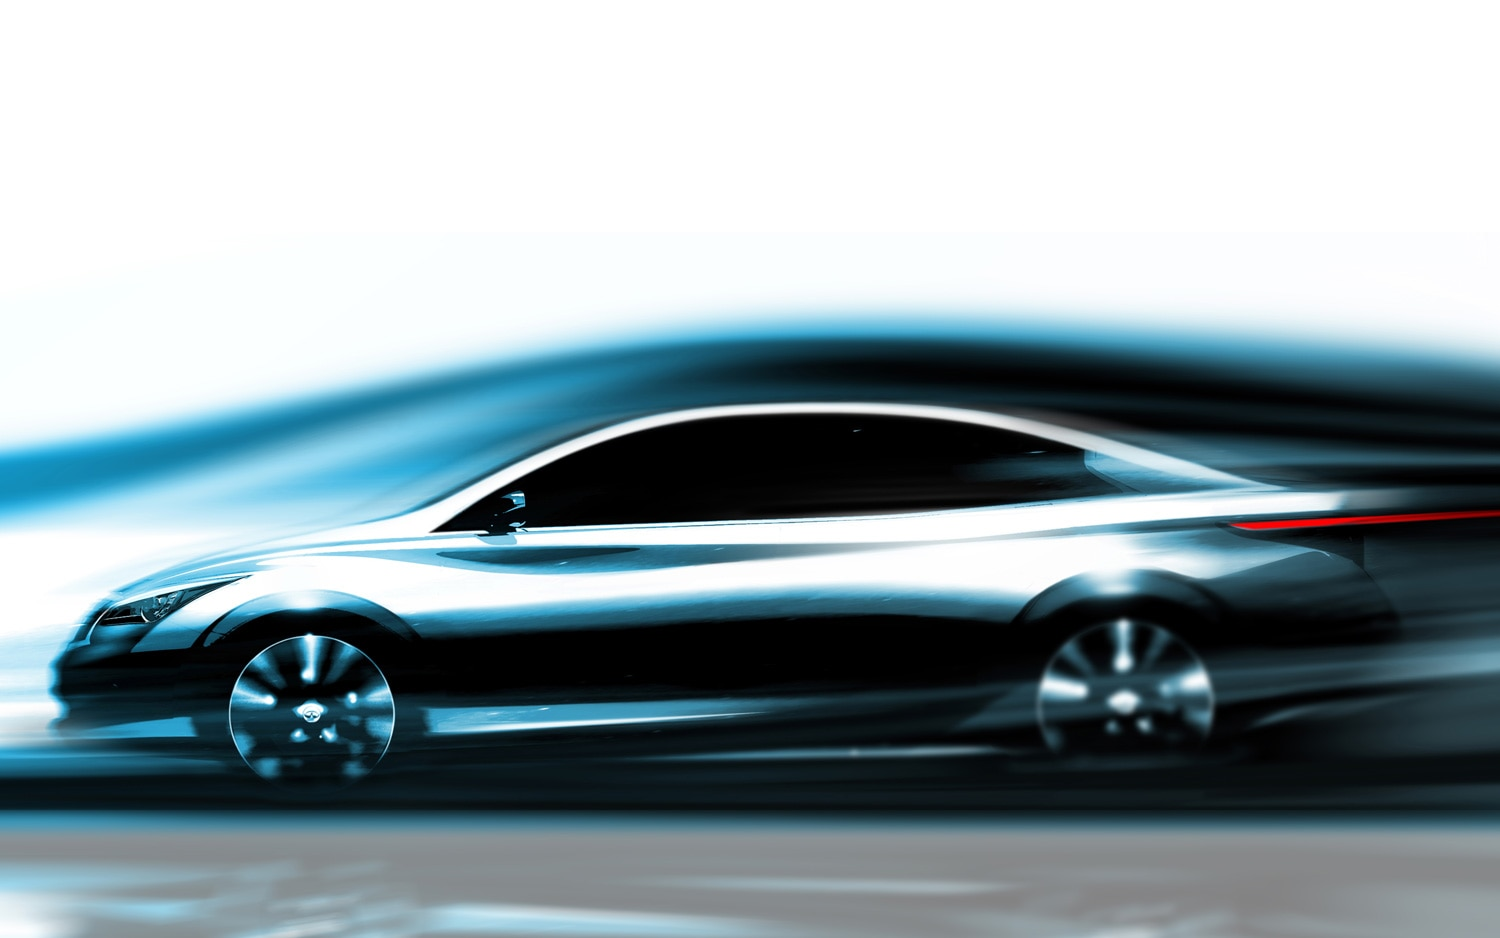 Infiniti Electric Car Concept Sketch